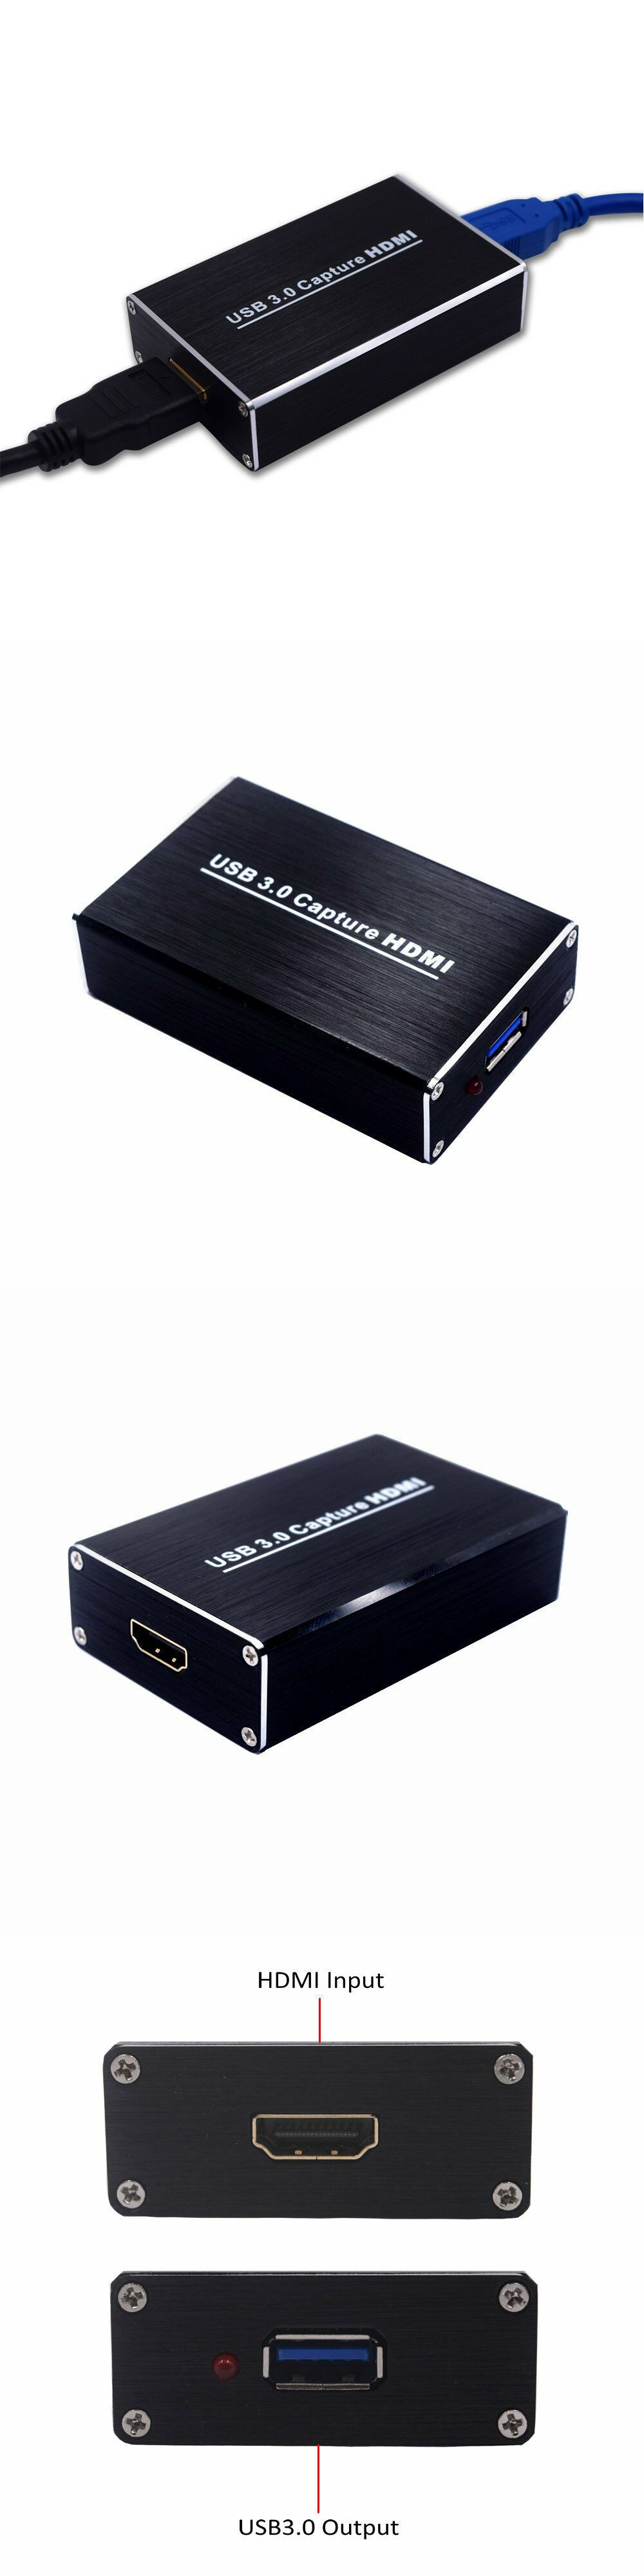 1080P HDMI to USB3.0 Capture Dongle Hot sale